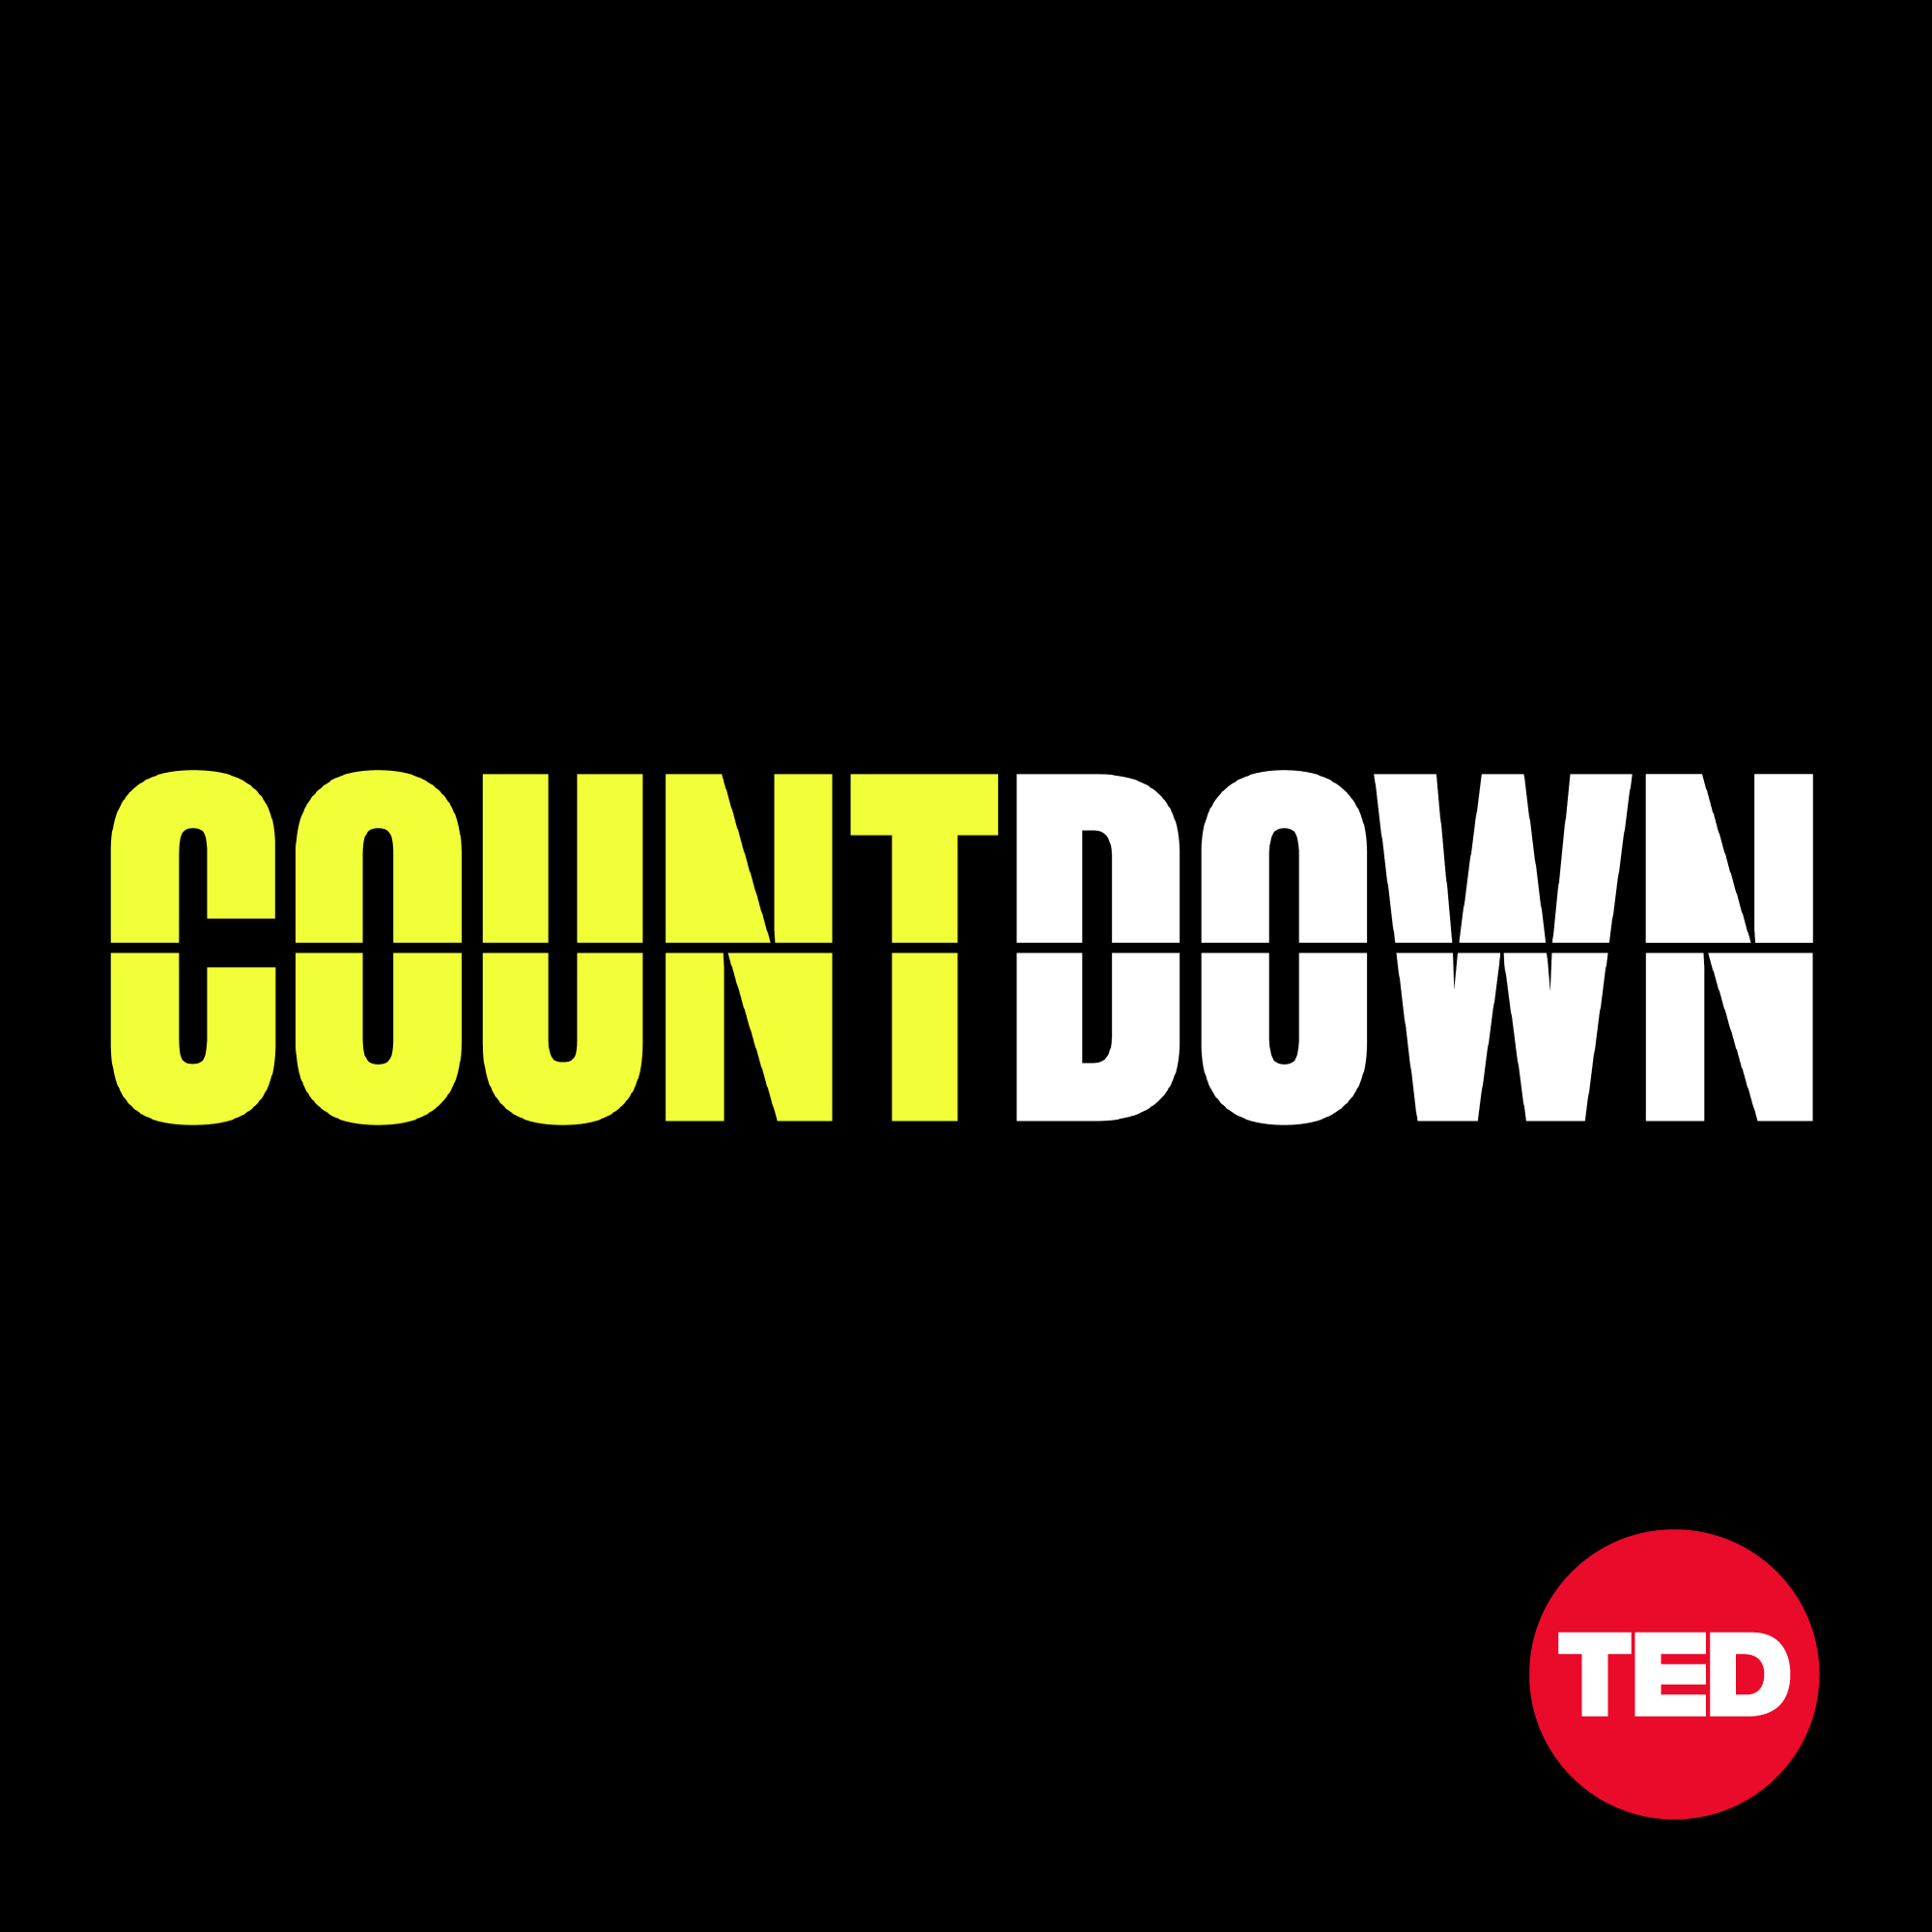 A special announcement from TED on climate